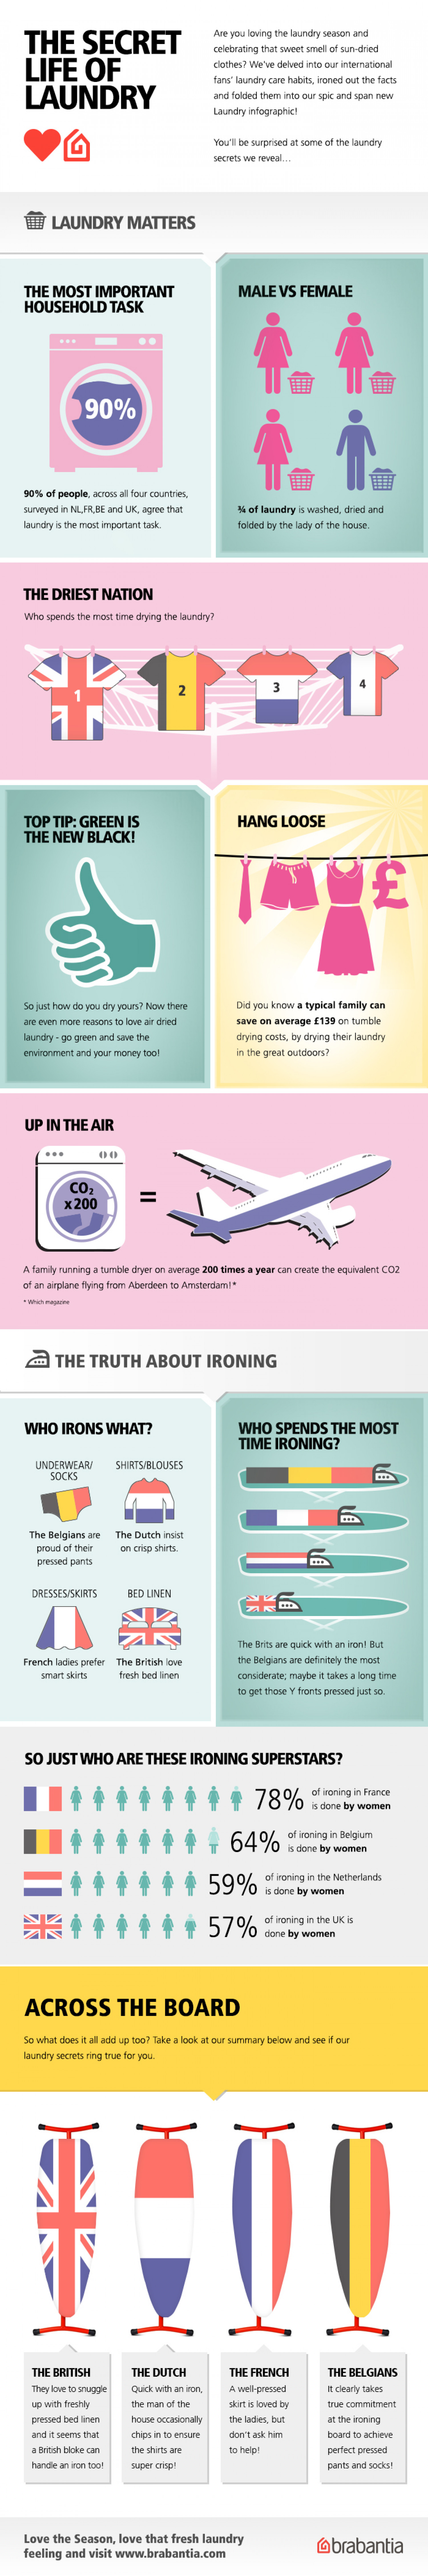 The Secret Life of Laundry Infographic